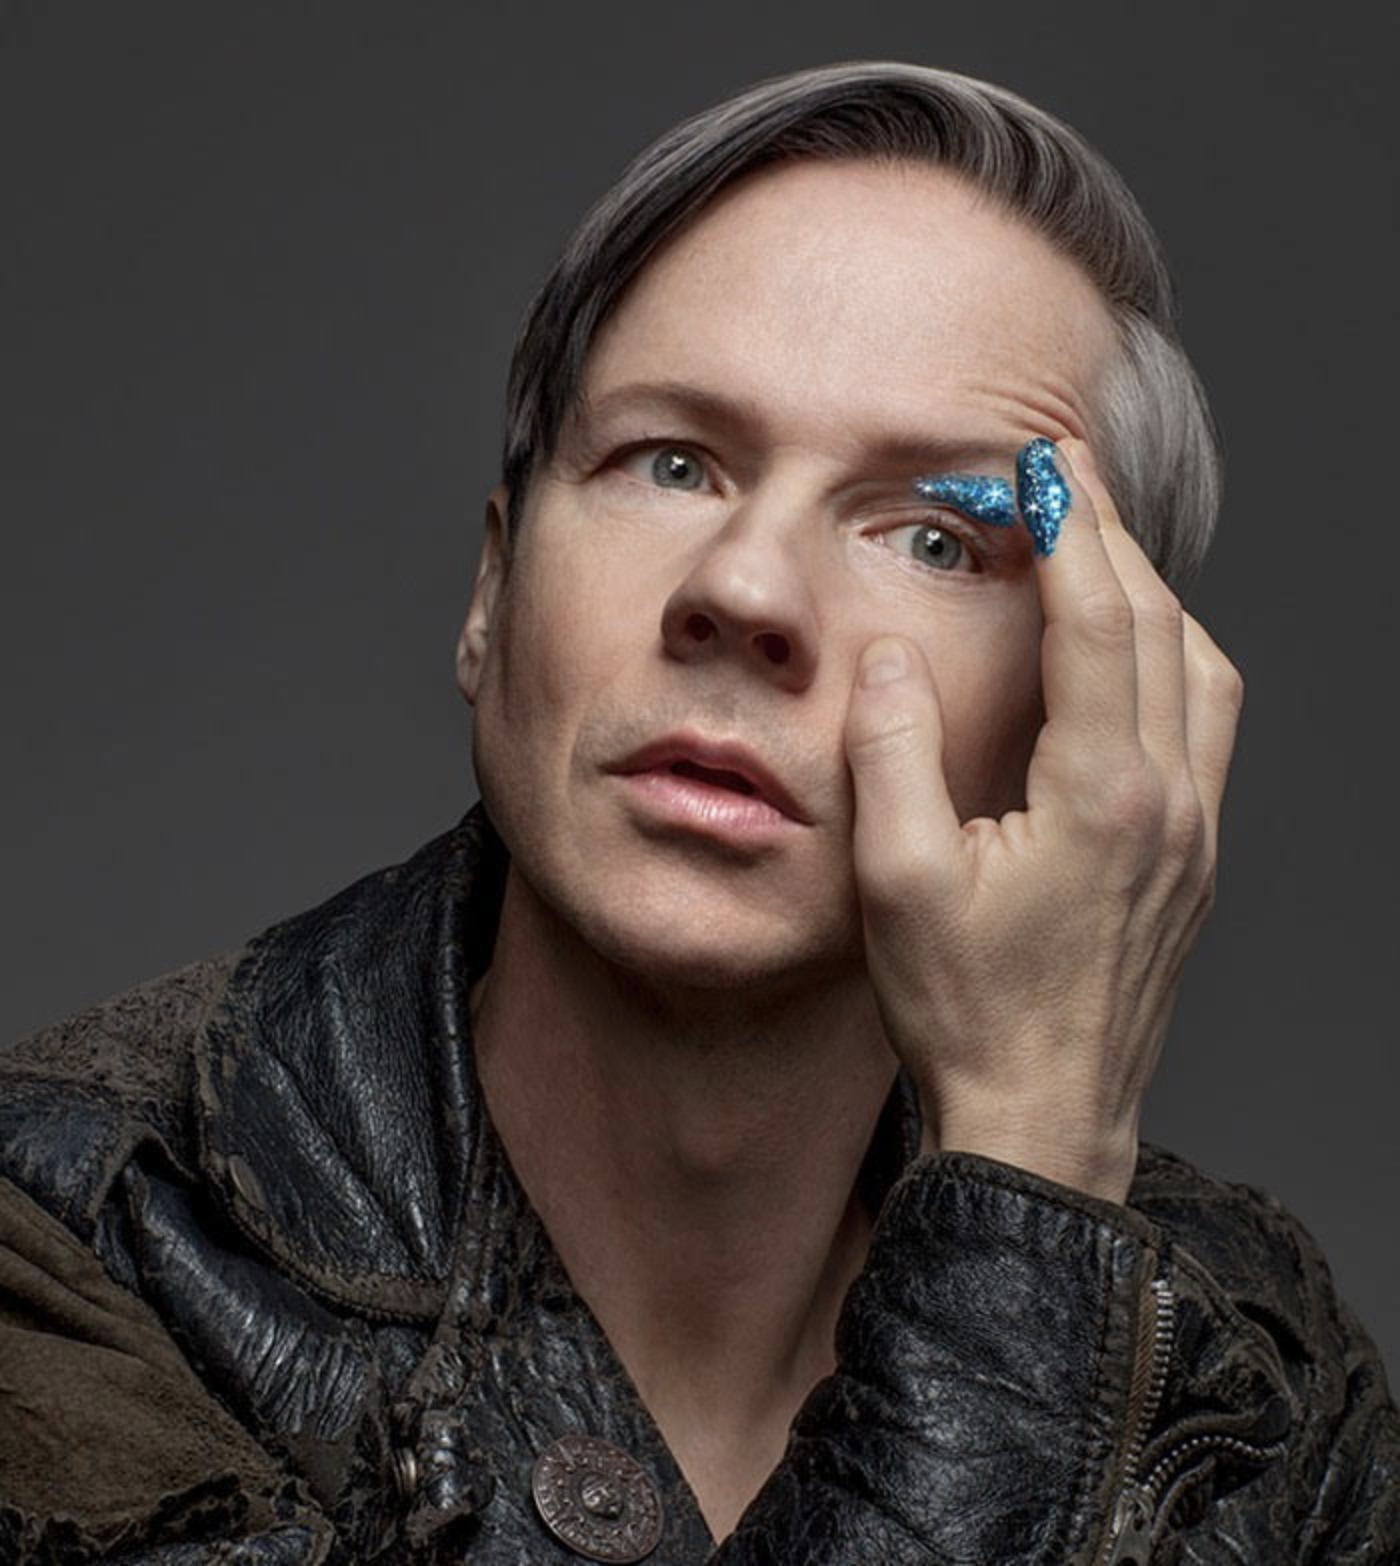 A photo of John Cameron Mitchell